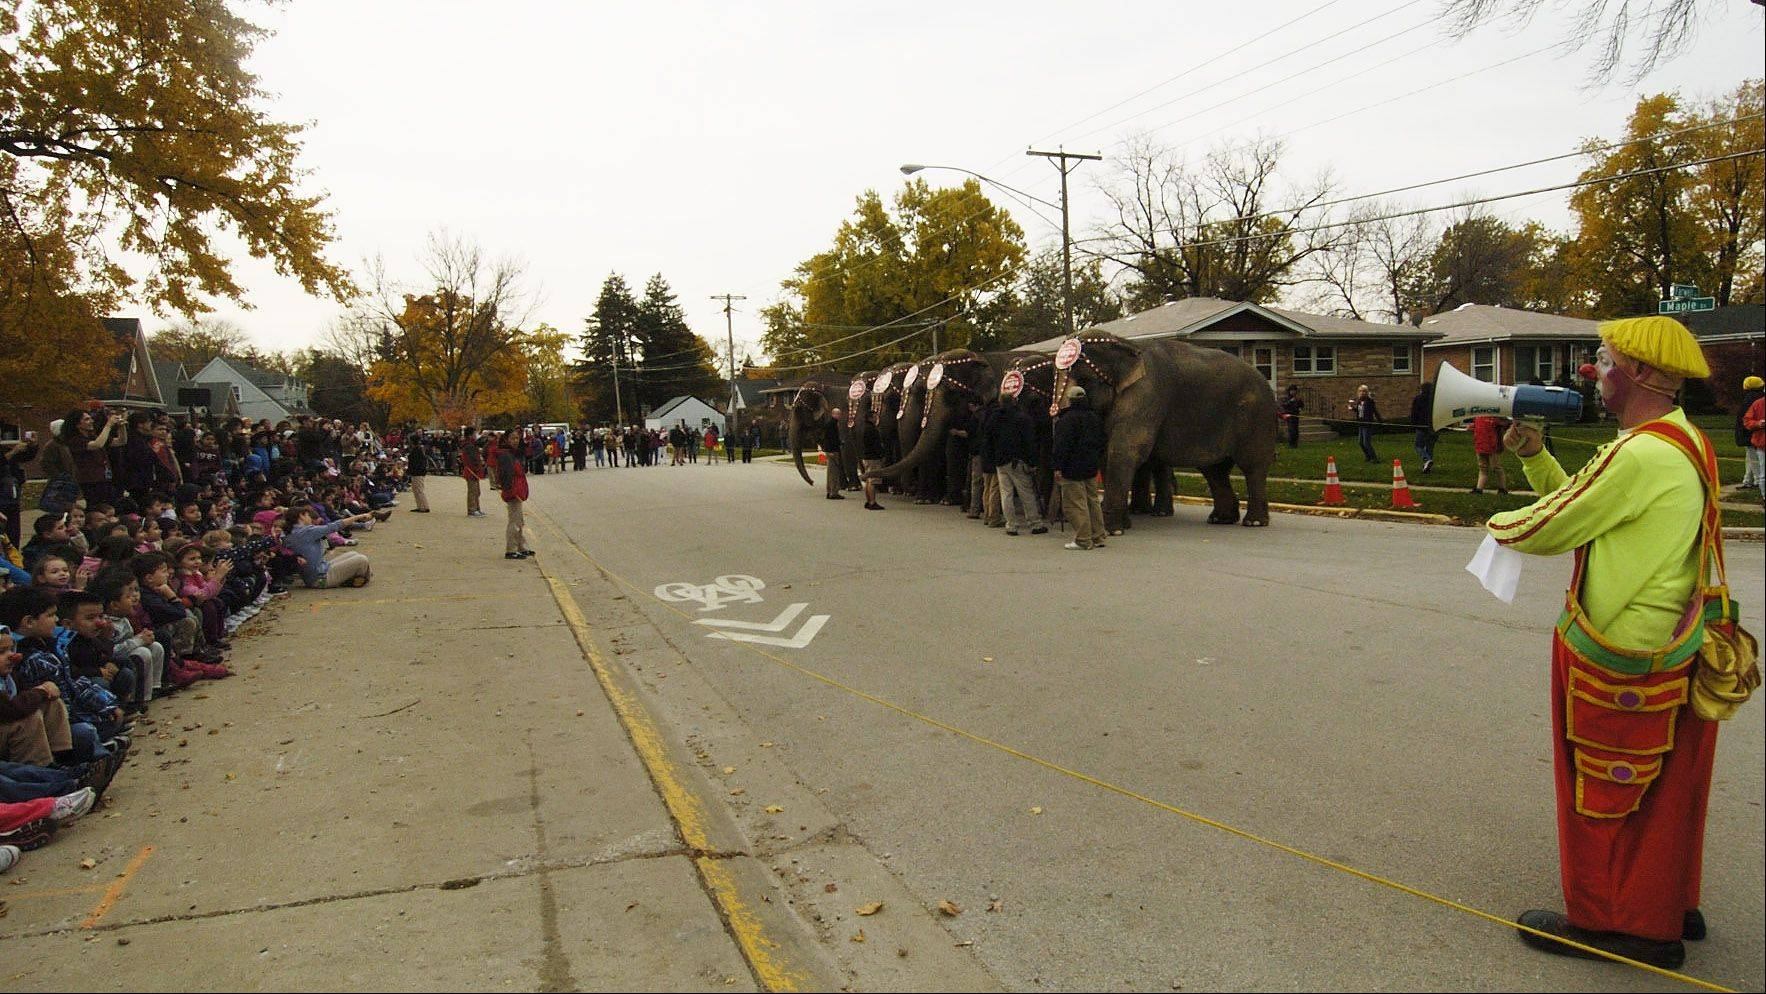 Orchard Place Elementary School students in Des Plaines welcome the Ringling Bros. elephants, who walked from Allstate Arena to their school.